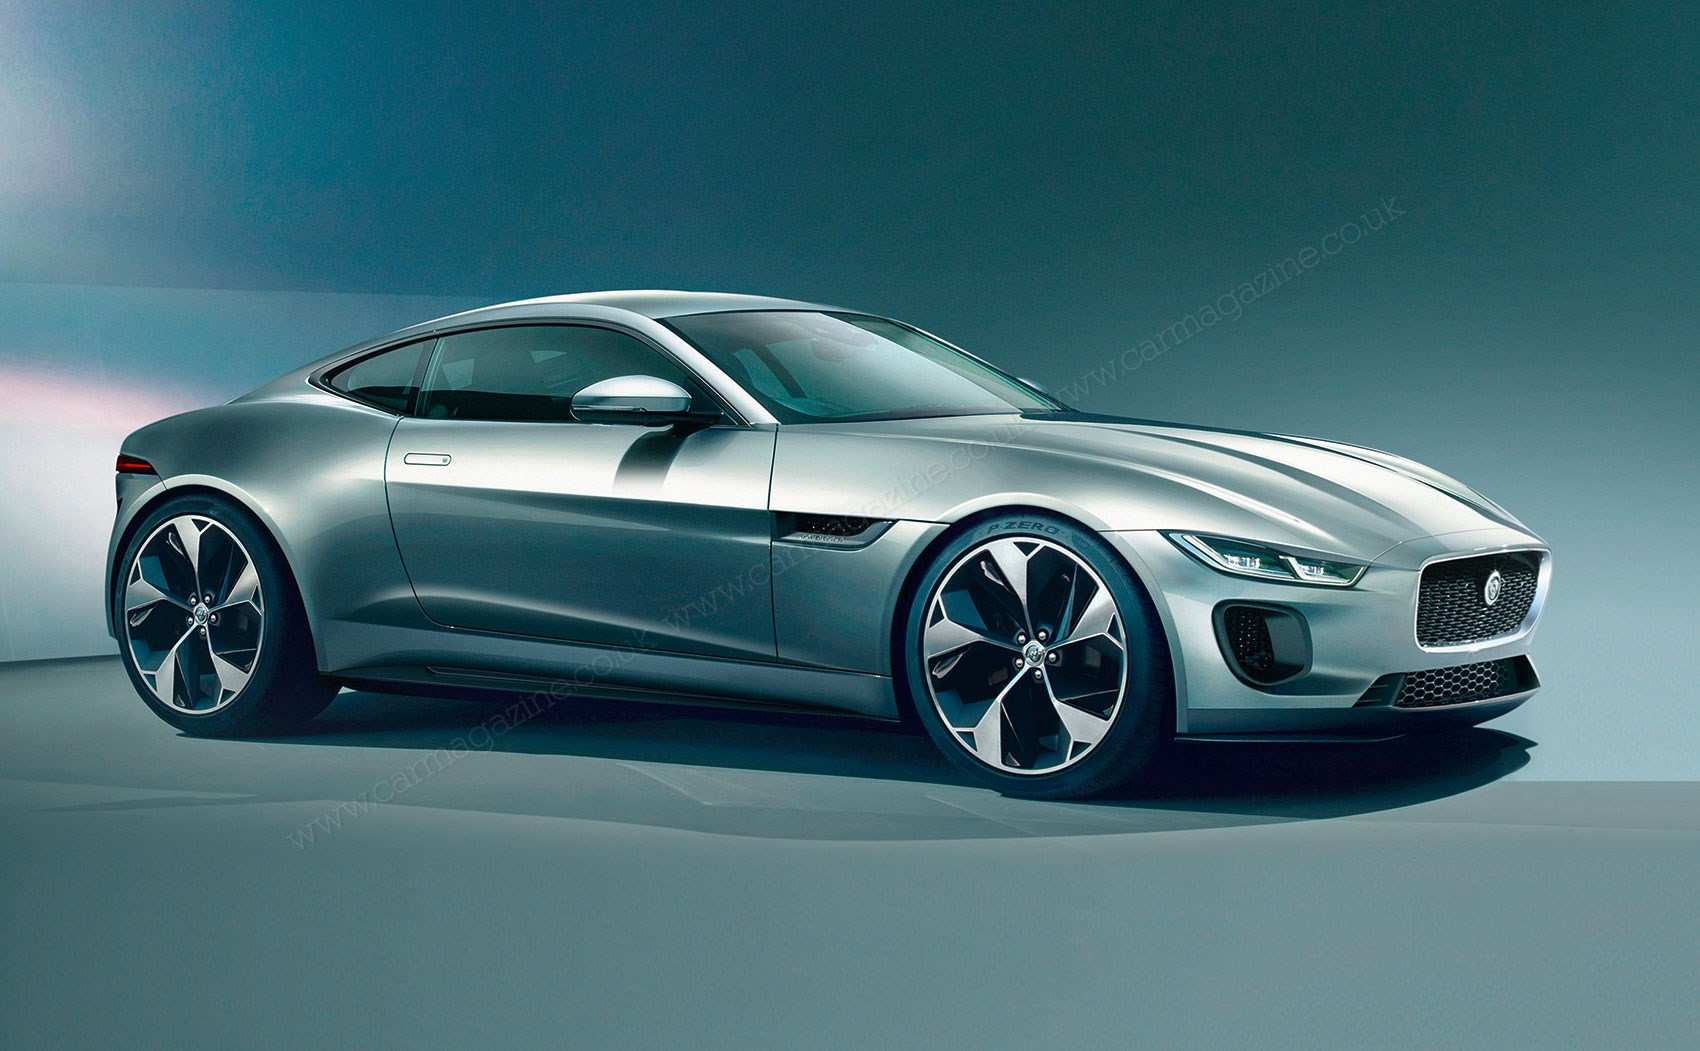 27 All New 2020 Jaguar F Type Price Spesification